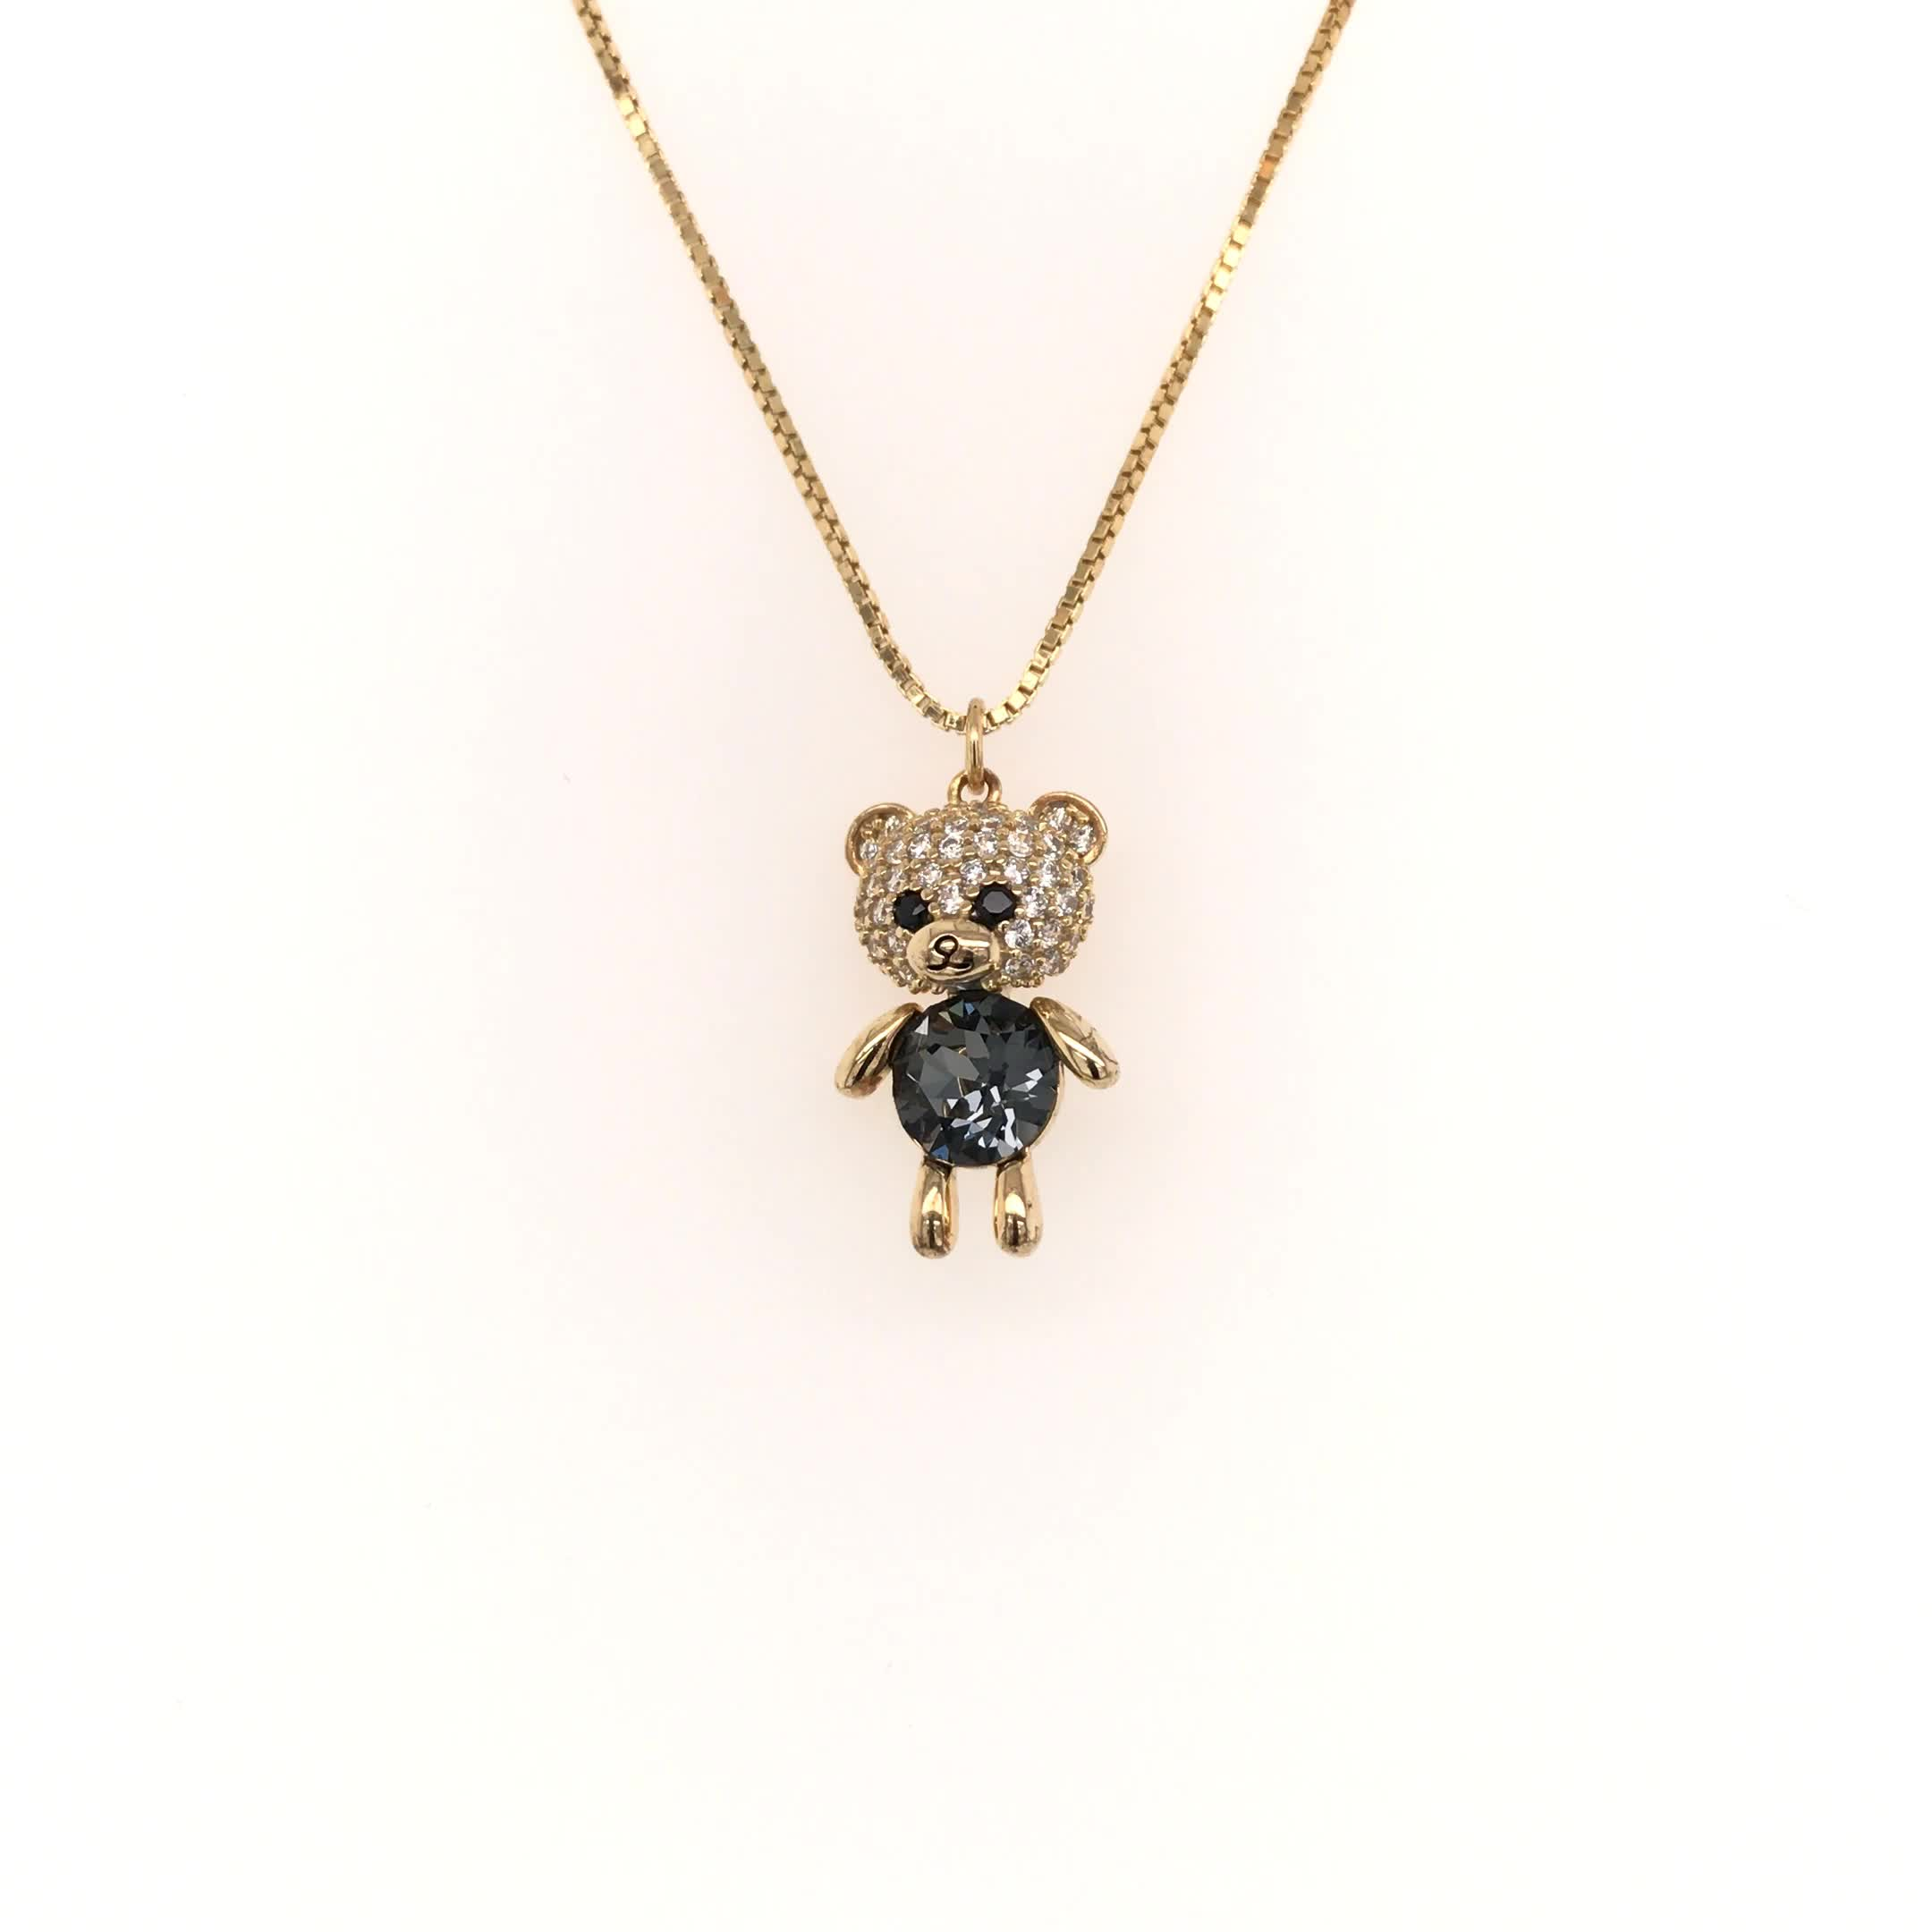 fashion jewelry necklace 2019 wholesale gold filled jewelry silver animal pendant